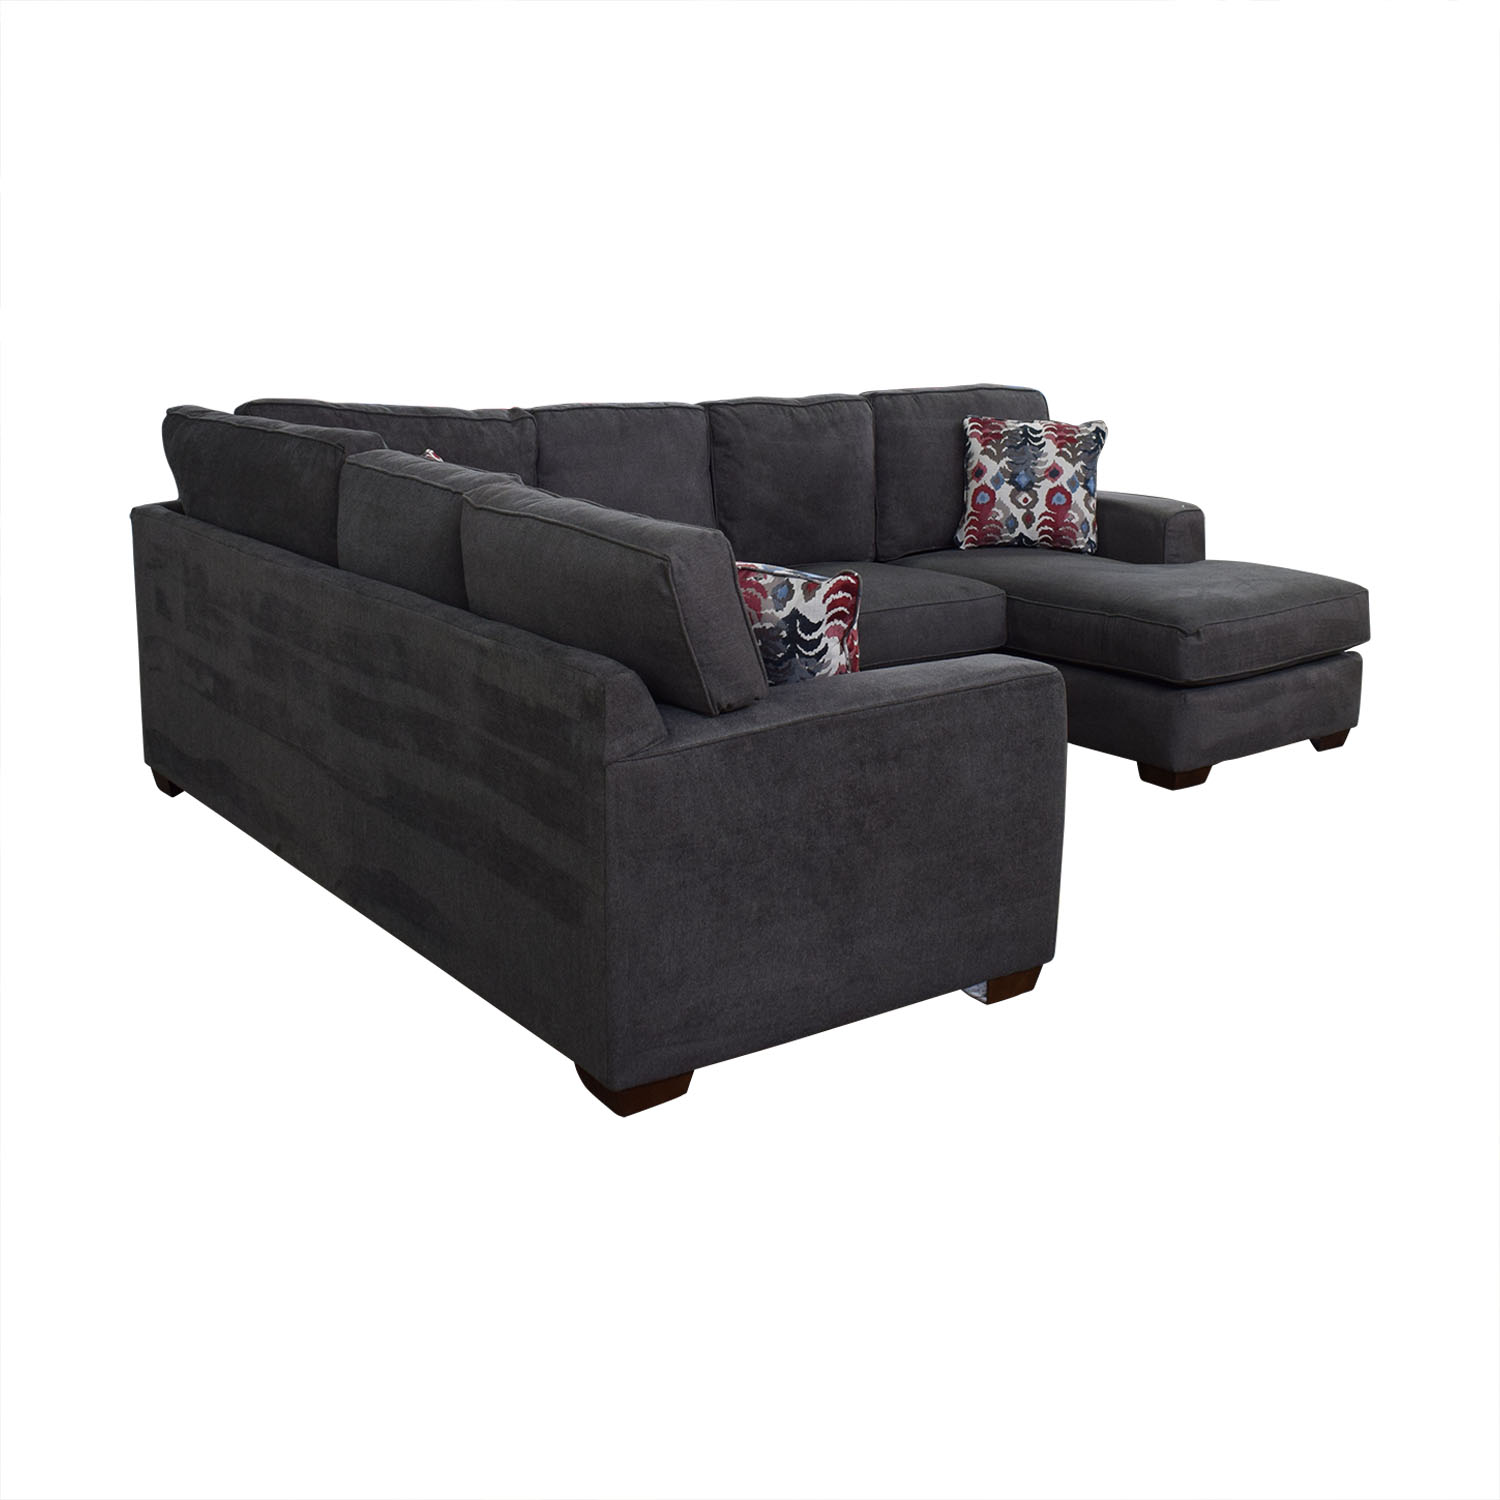 Klaussner Klaussner Abbott Three-Piece Chaise Sectional Sofa nyc